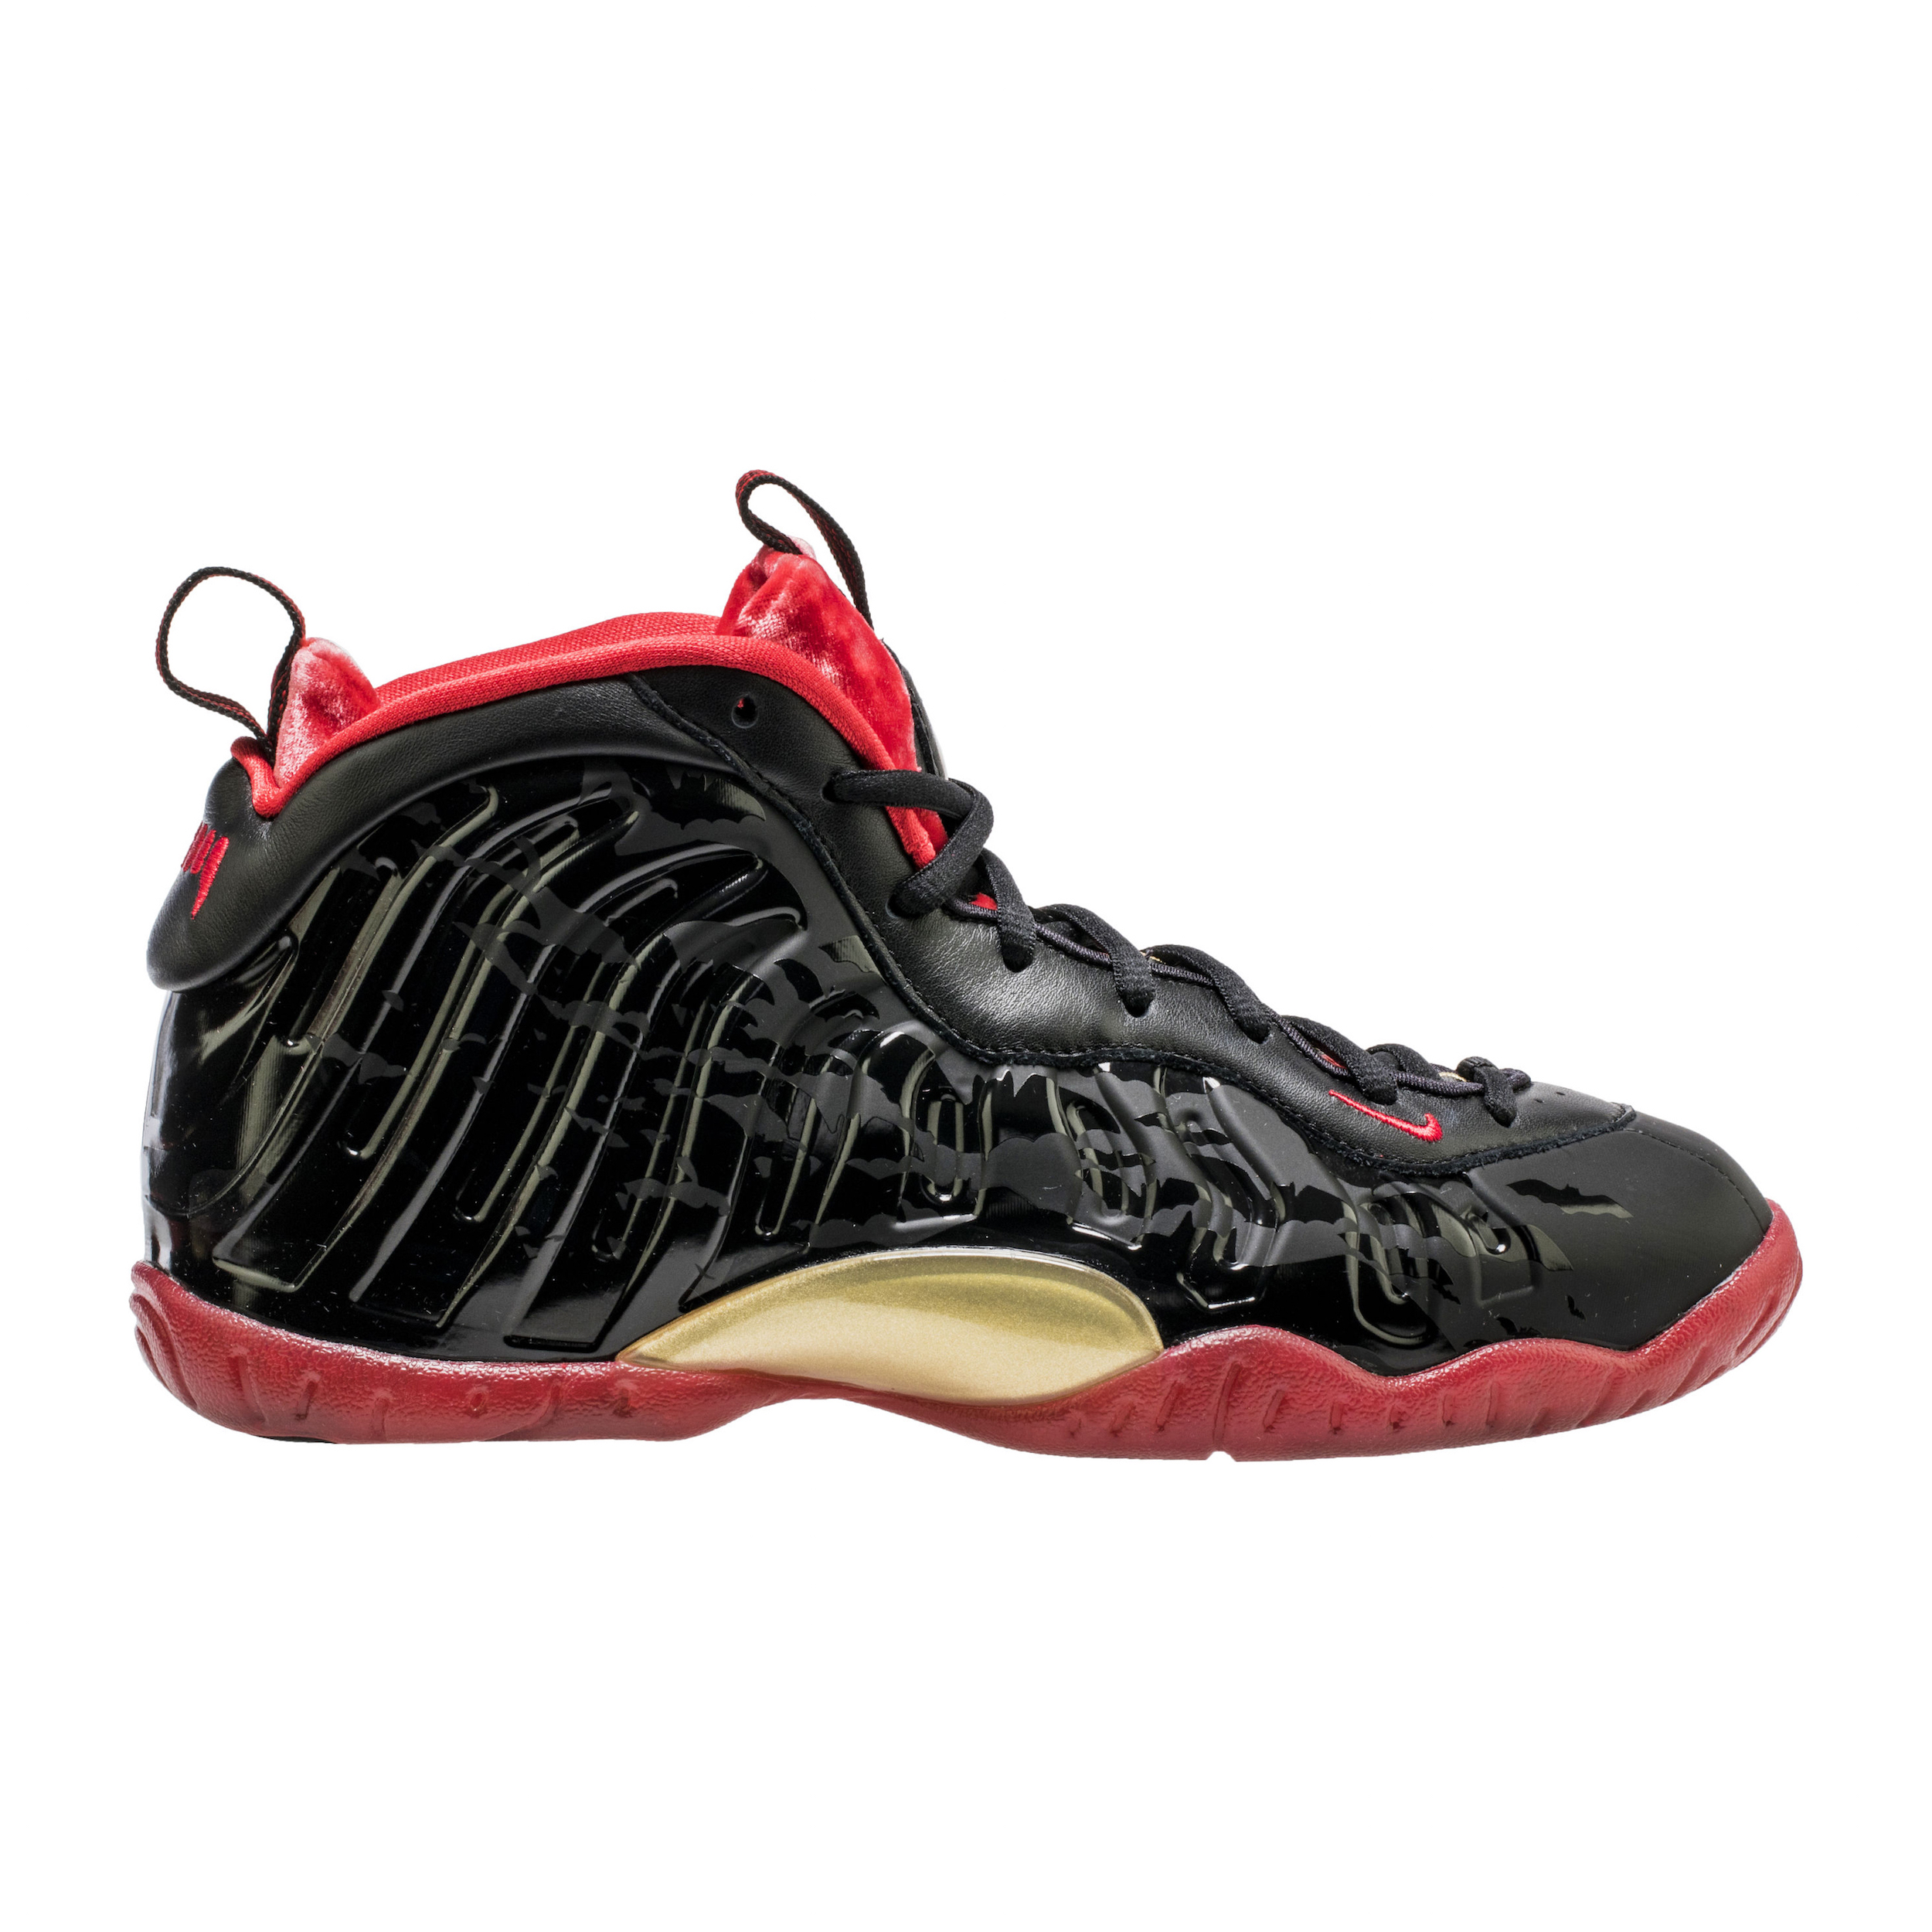 NIKE LIL FOAMPOSITE ONE QUICKSTRIKE GS 2